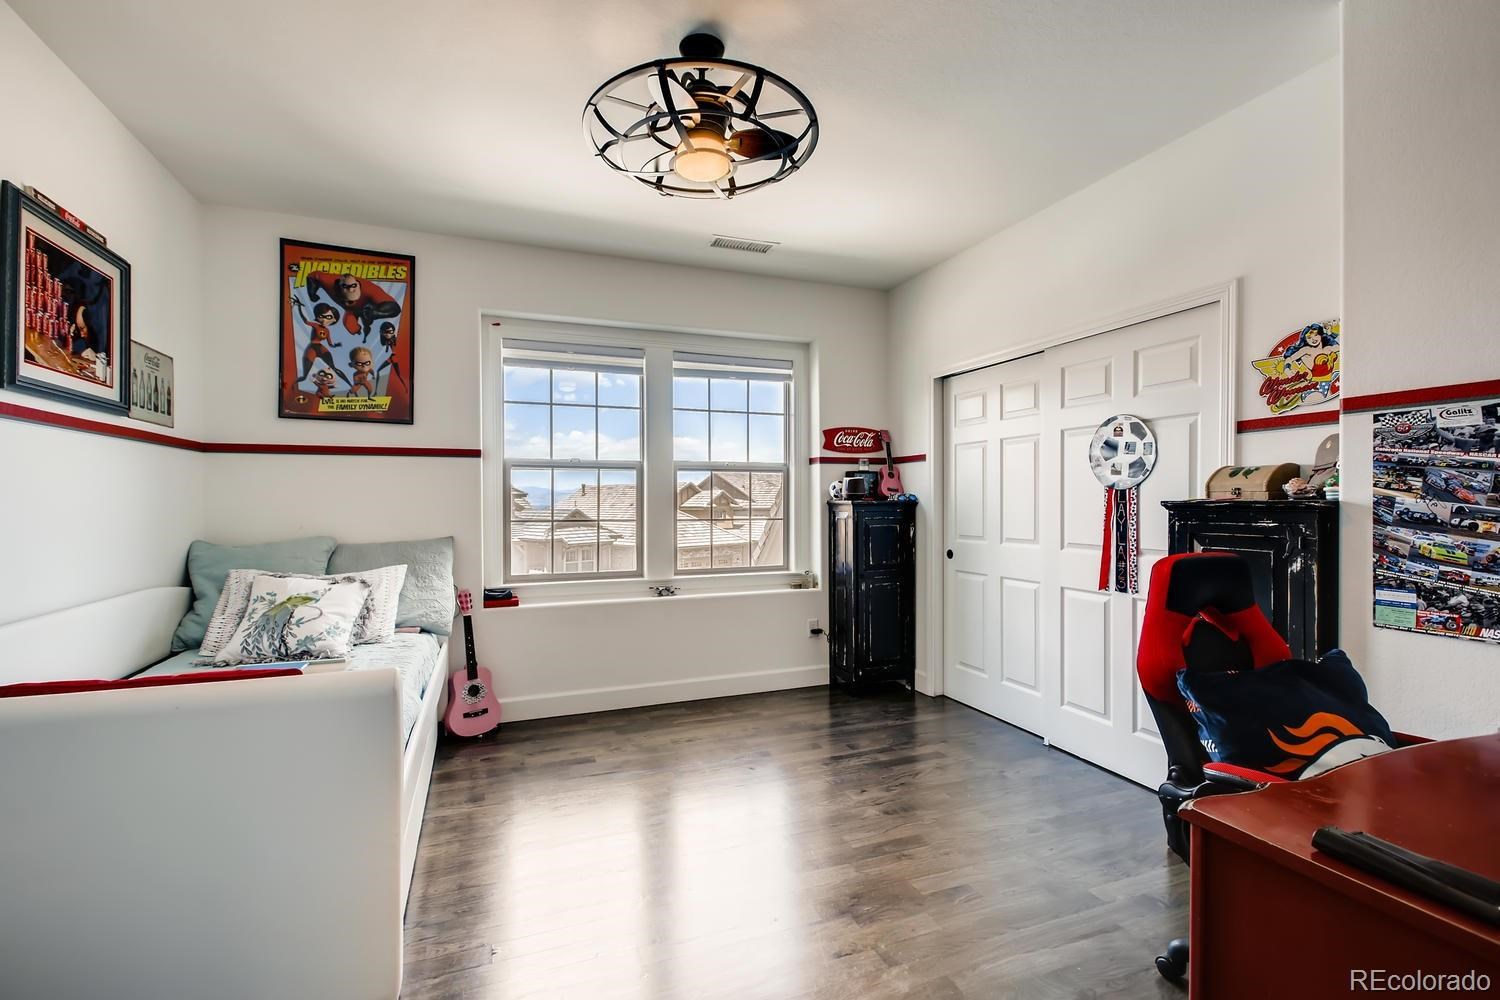 MLS# 5689224 - 20 - 10754 Greycliffe Drive, Highlands Ranch, CO 80126